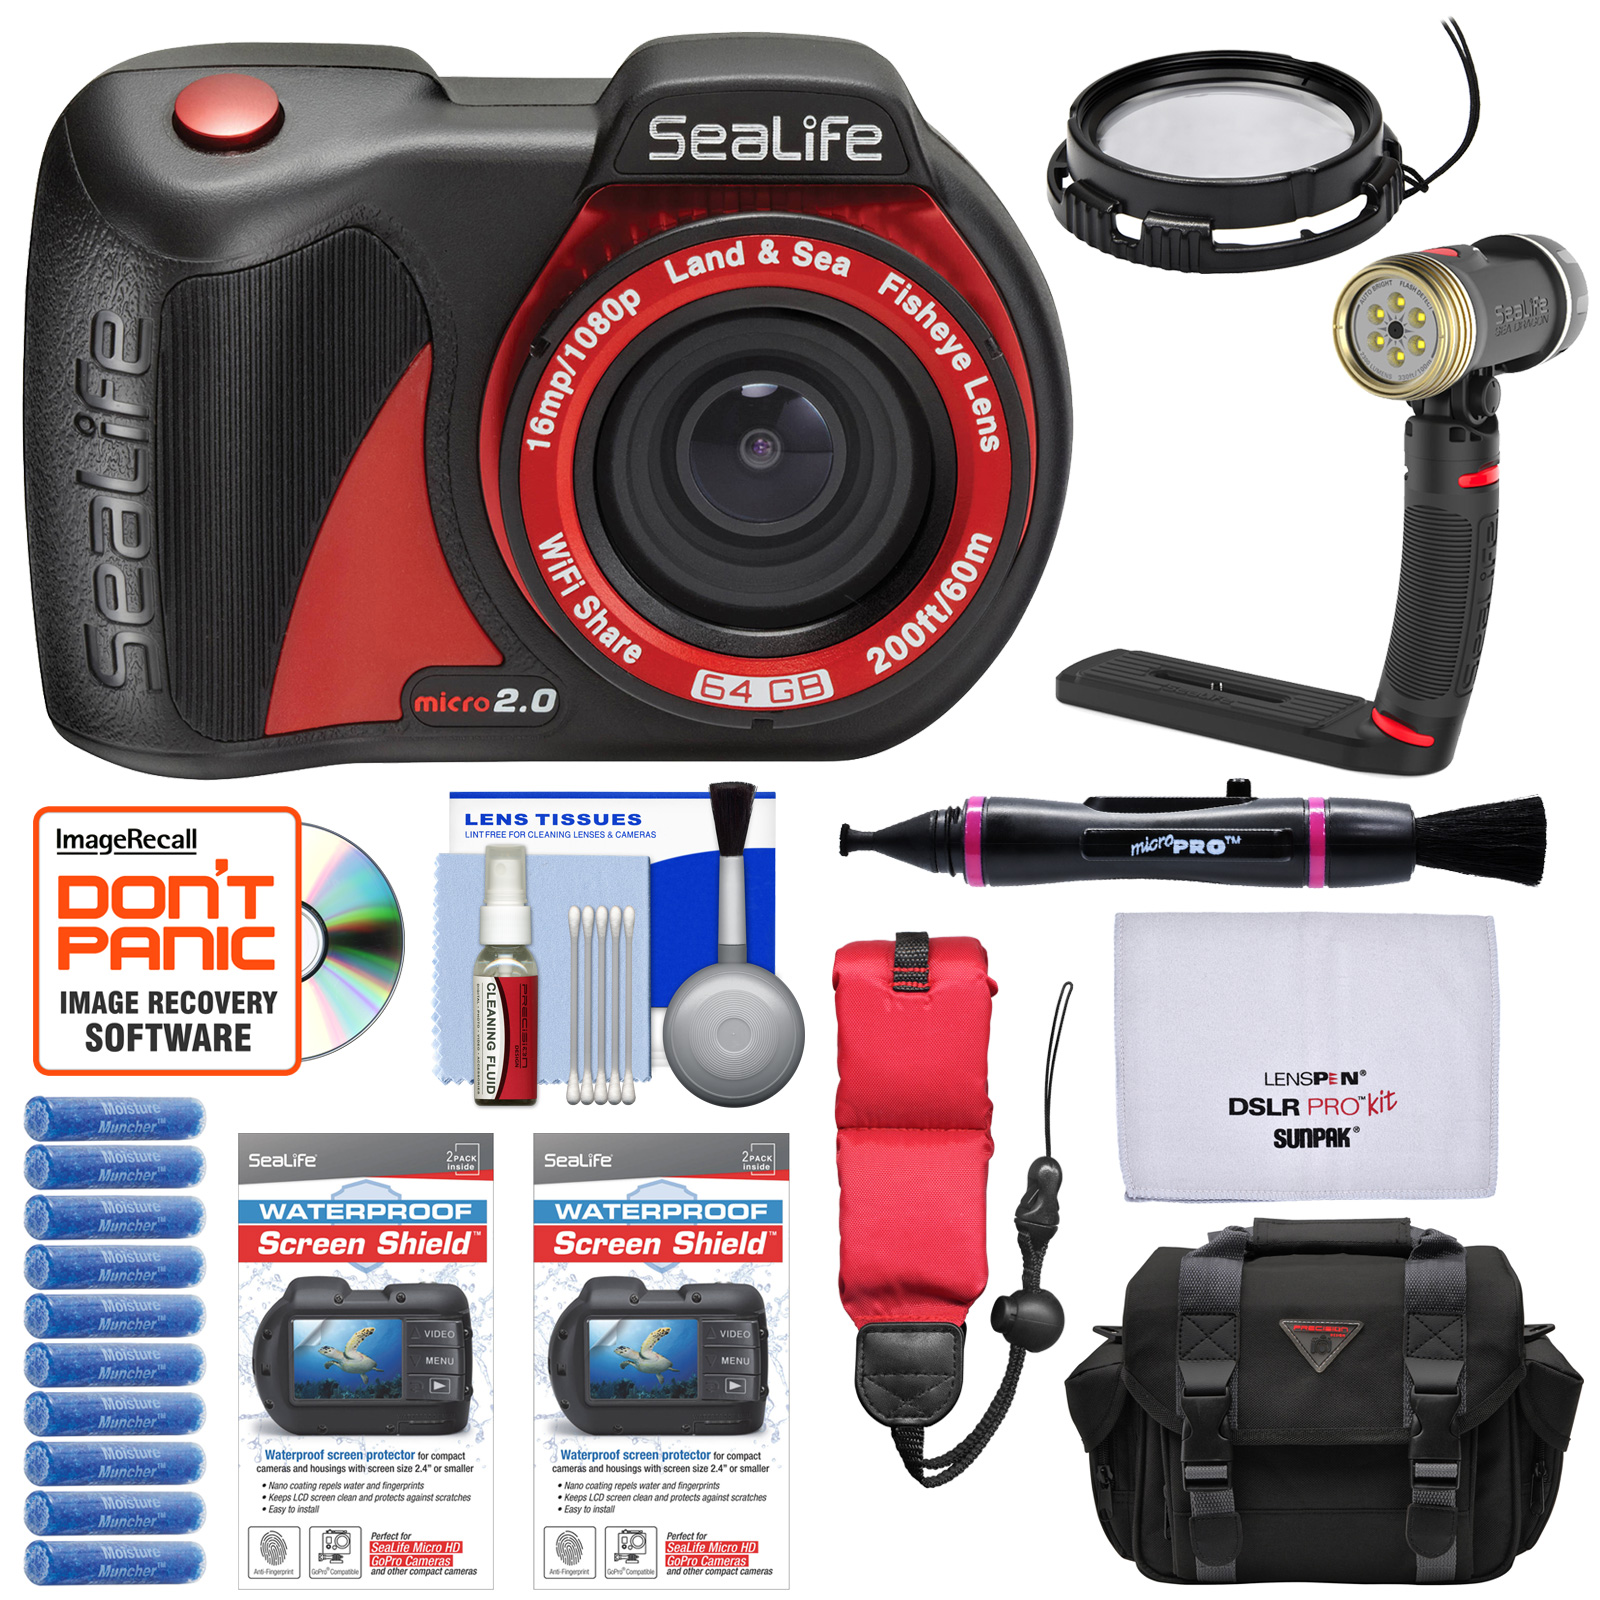 SeaLife Micro 2.0 64GB Wi-Fi Underwater Digital Camera with 10x Close Up Lens + SL674 Sea Dragon LED Video... by SeaLife